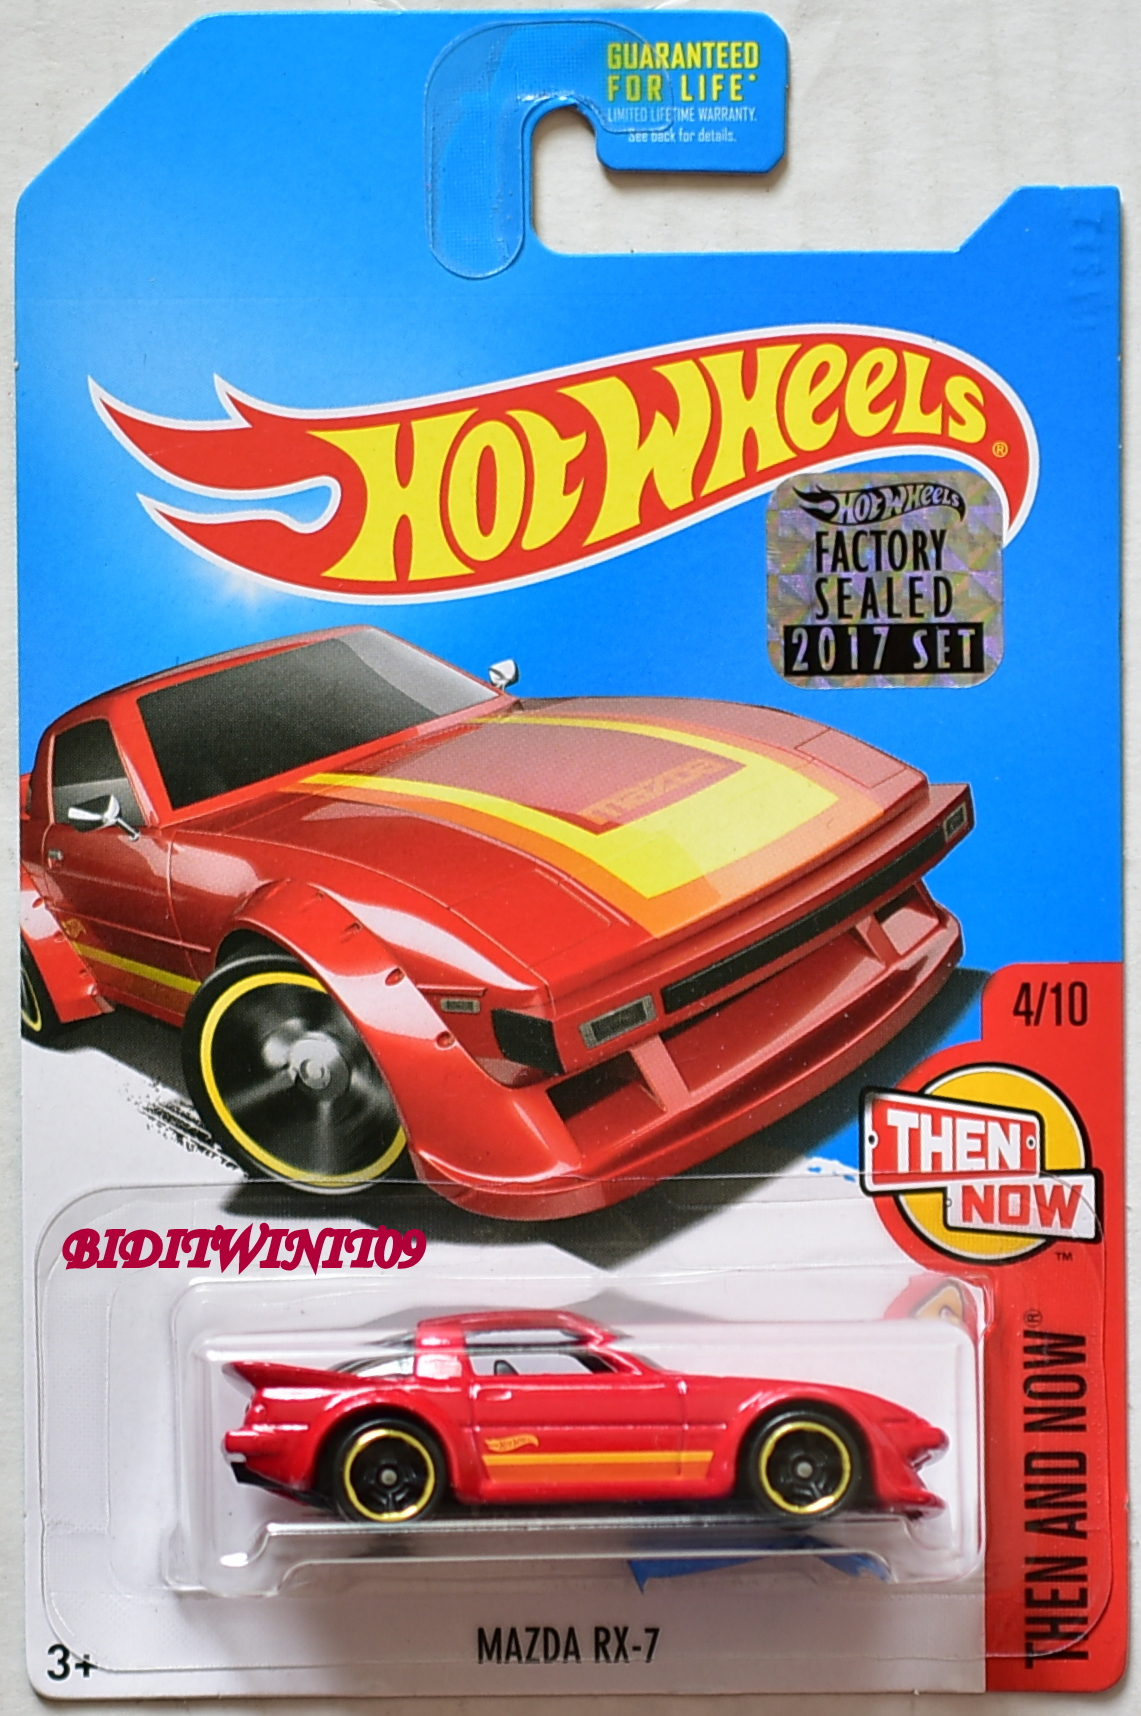 HOT WHEELS 2017 THEN AND NOW MAZDA RX-7 #4/10 KMART RED FACTORY SEALED E+